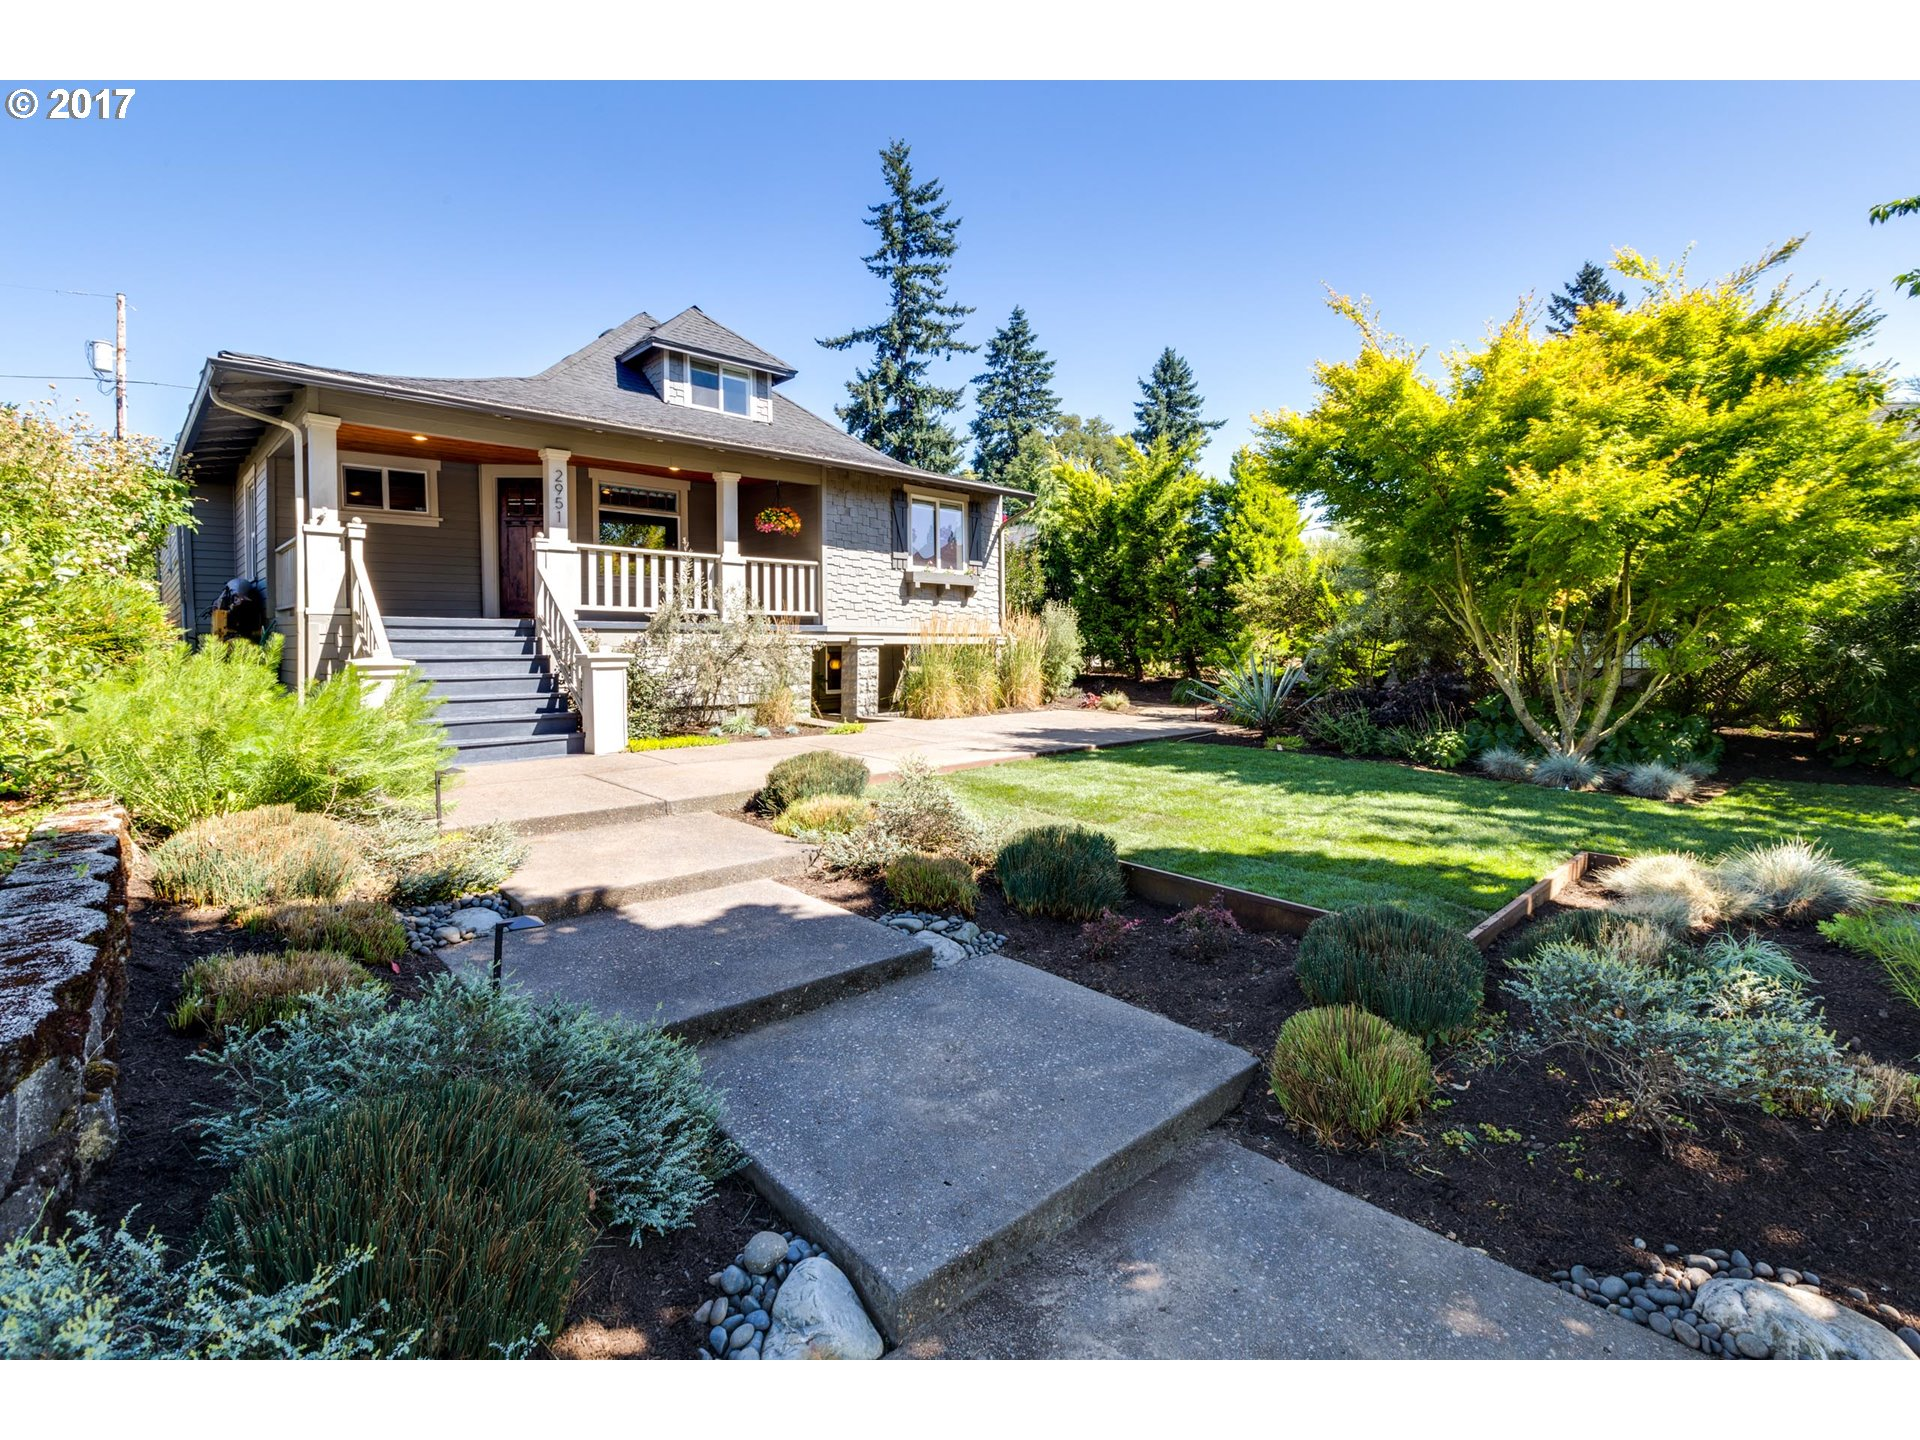 Located on a quiet & magical stretch of N Willamette Blvd w/ views galore! Completely renovated in 2011. New windows and engineered HW floors. Open concept kitchen-dining-living makes the most of the space. Granite countertops & SS appliances in kitchen. Huge master on main w/ vaulted ceilings. Nice size lot w/ d/w parking. Spacious family room up & ADU potential down w/ ext. entrance. 4th BR may be non-conforming.